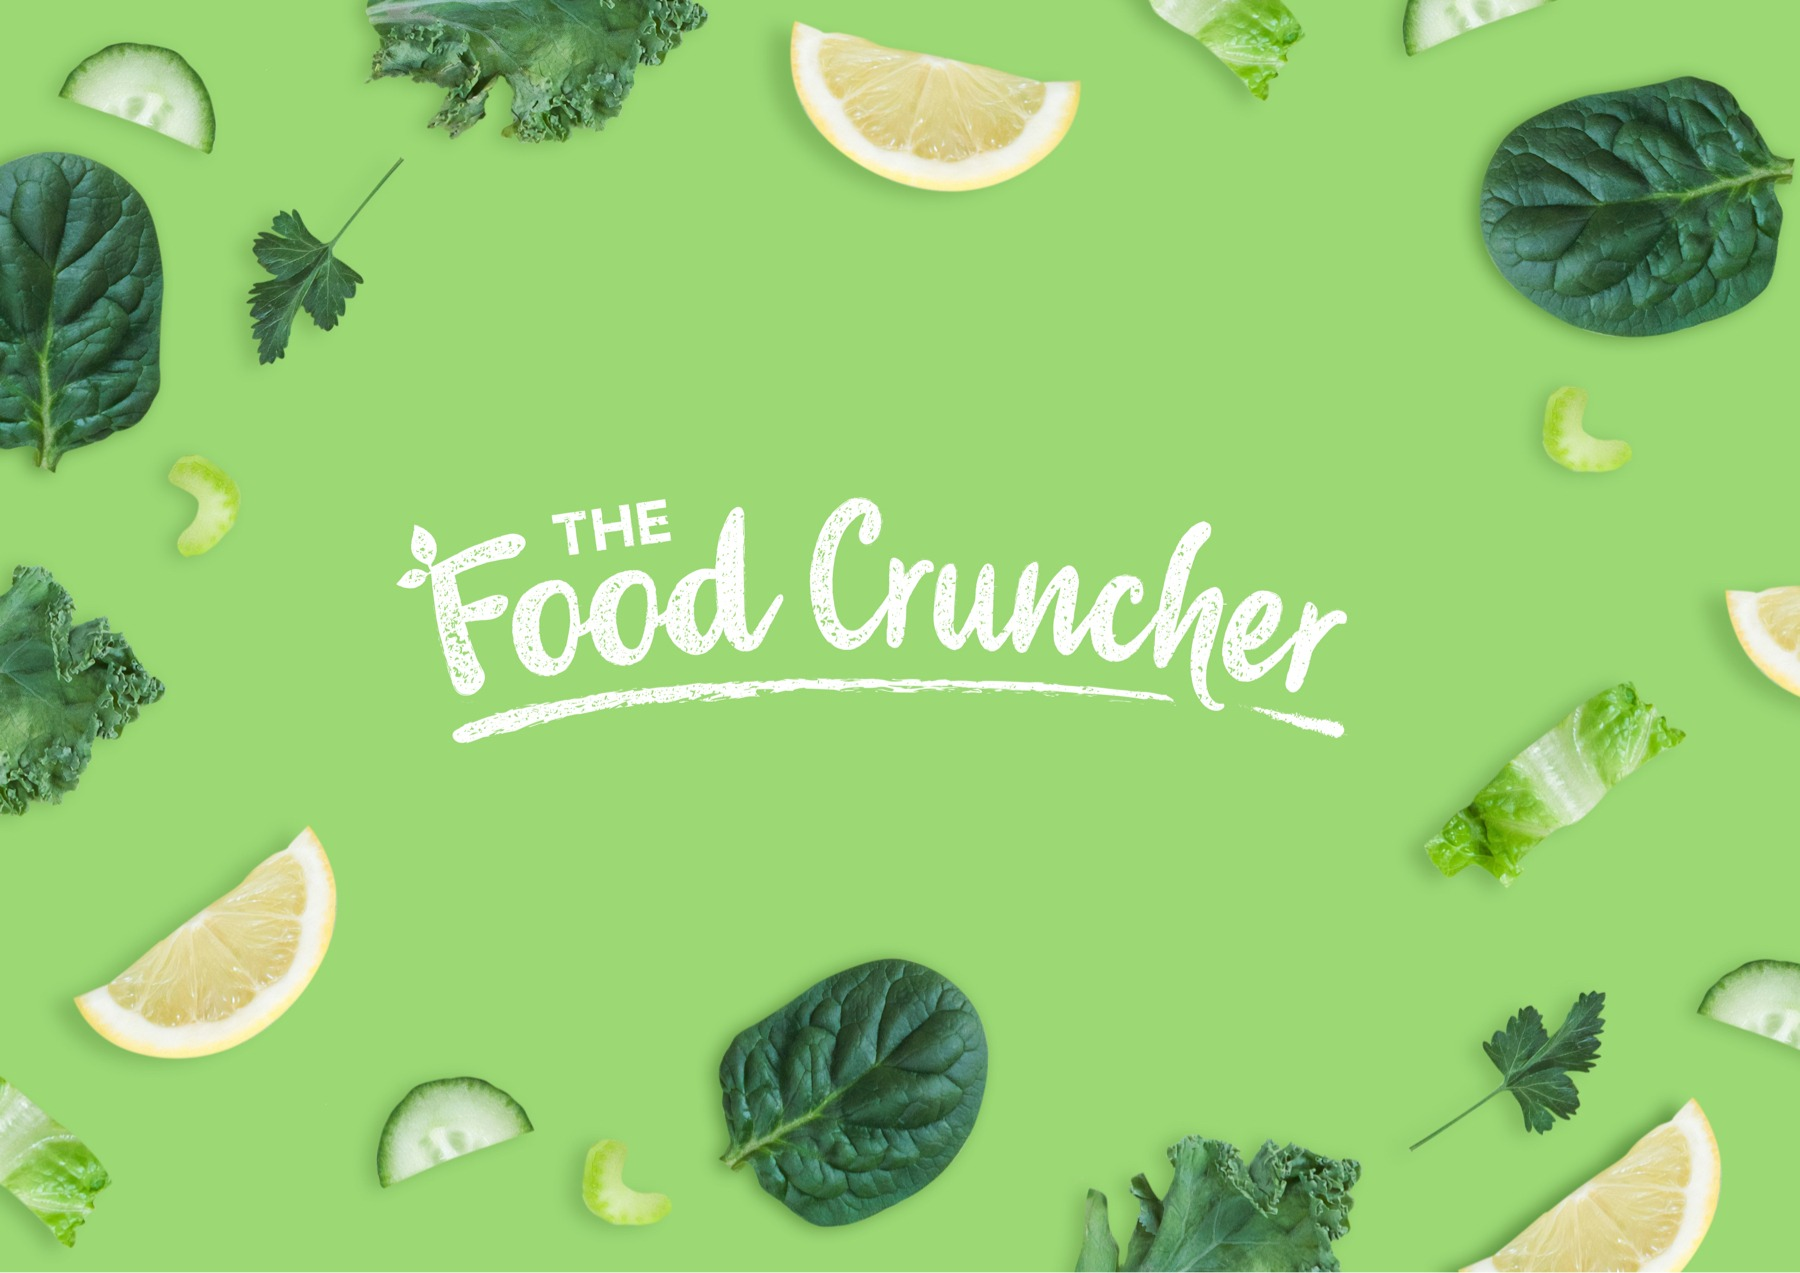 Logo Design - The Food Cruncher